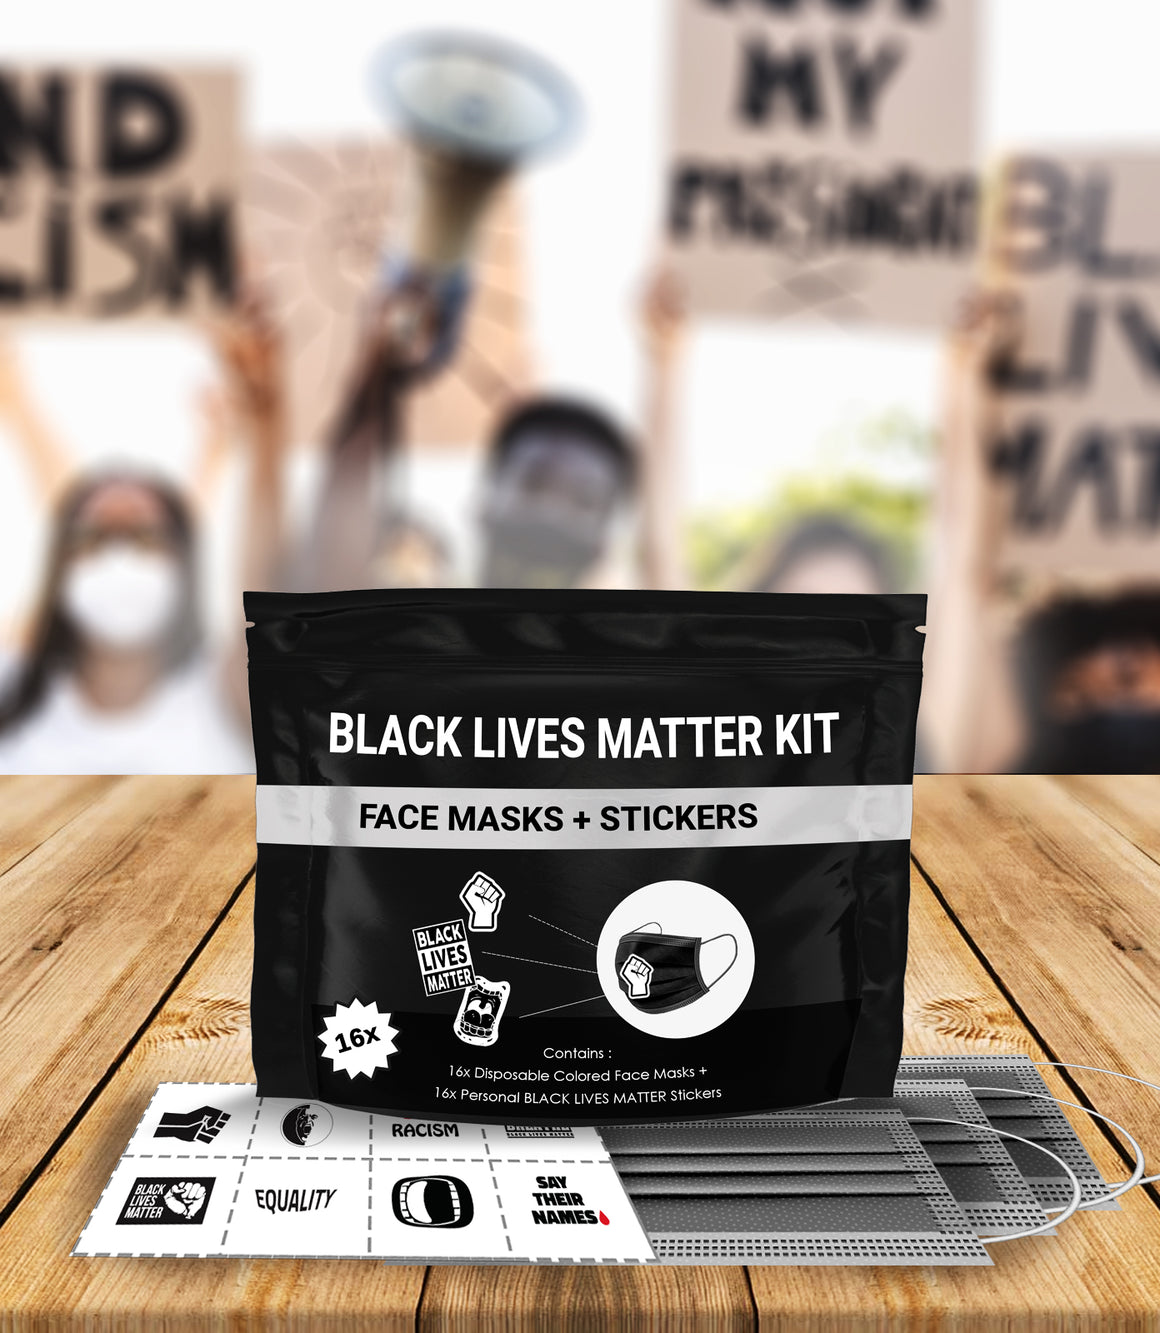 Black Lives Matter Mask Kit + Stickers. 16 Disposable Face Masks & 16 Assorted #BLM Movement Stickers